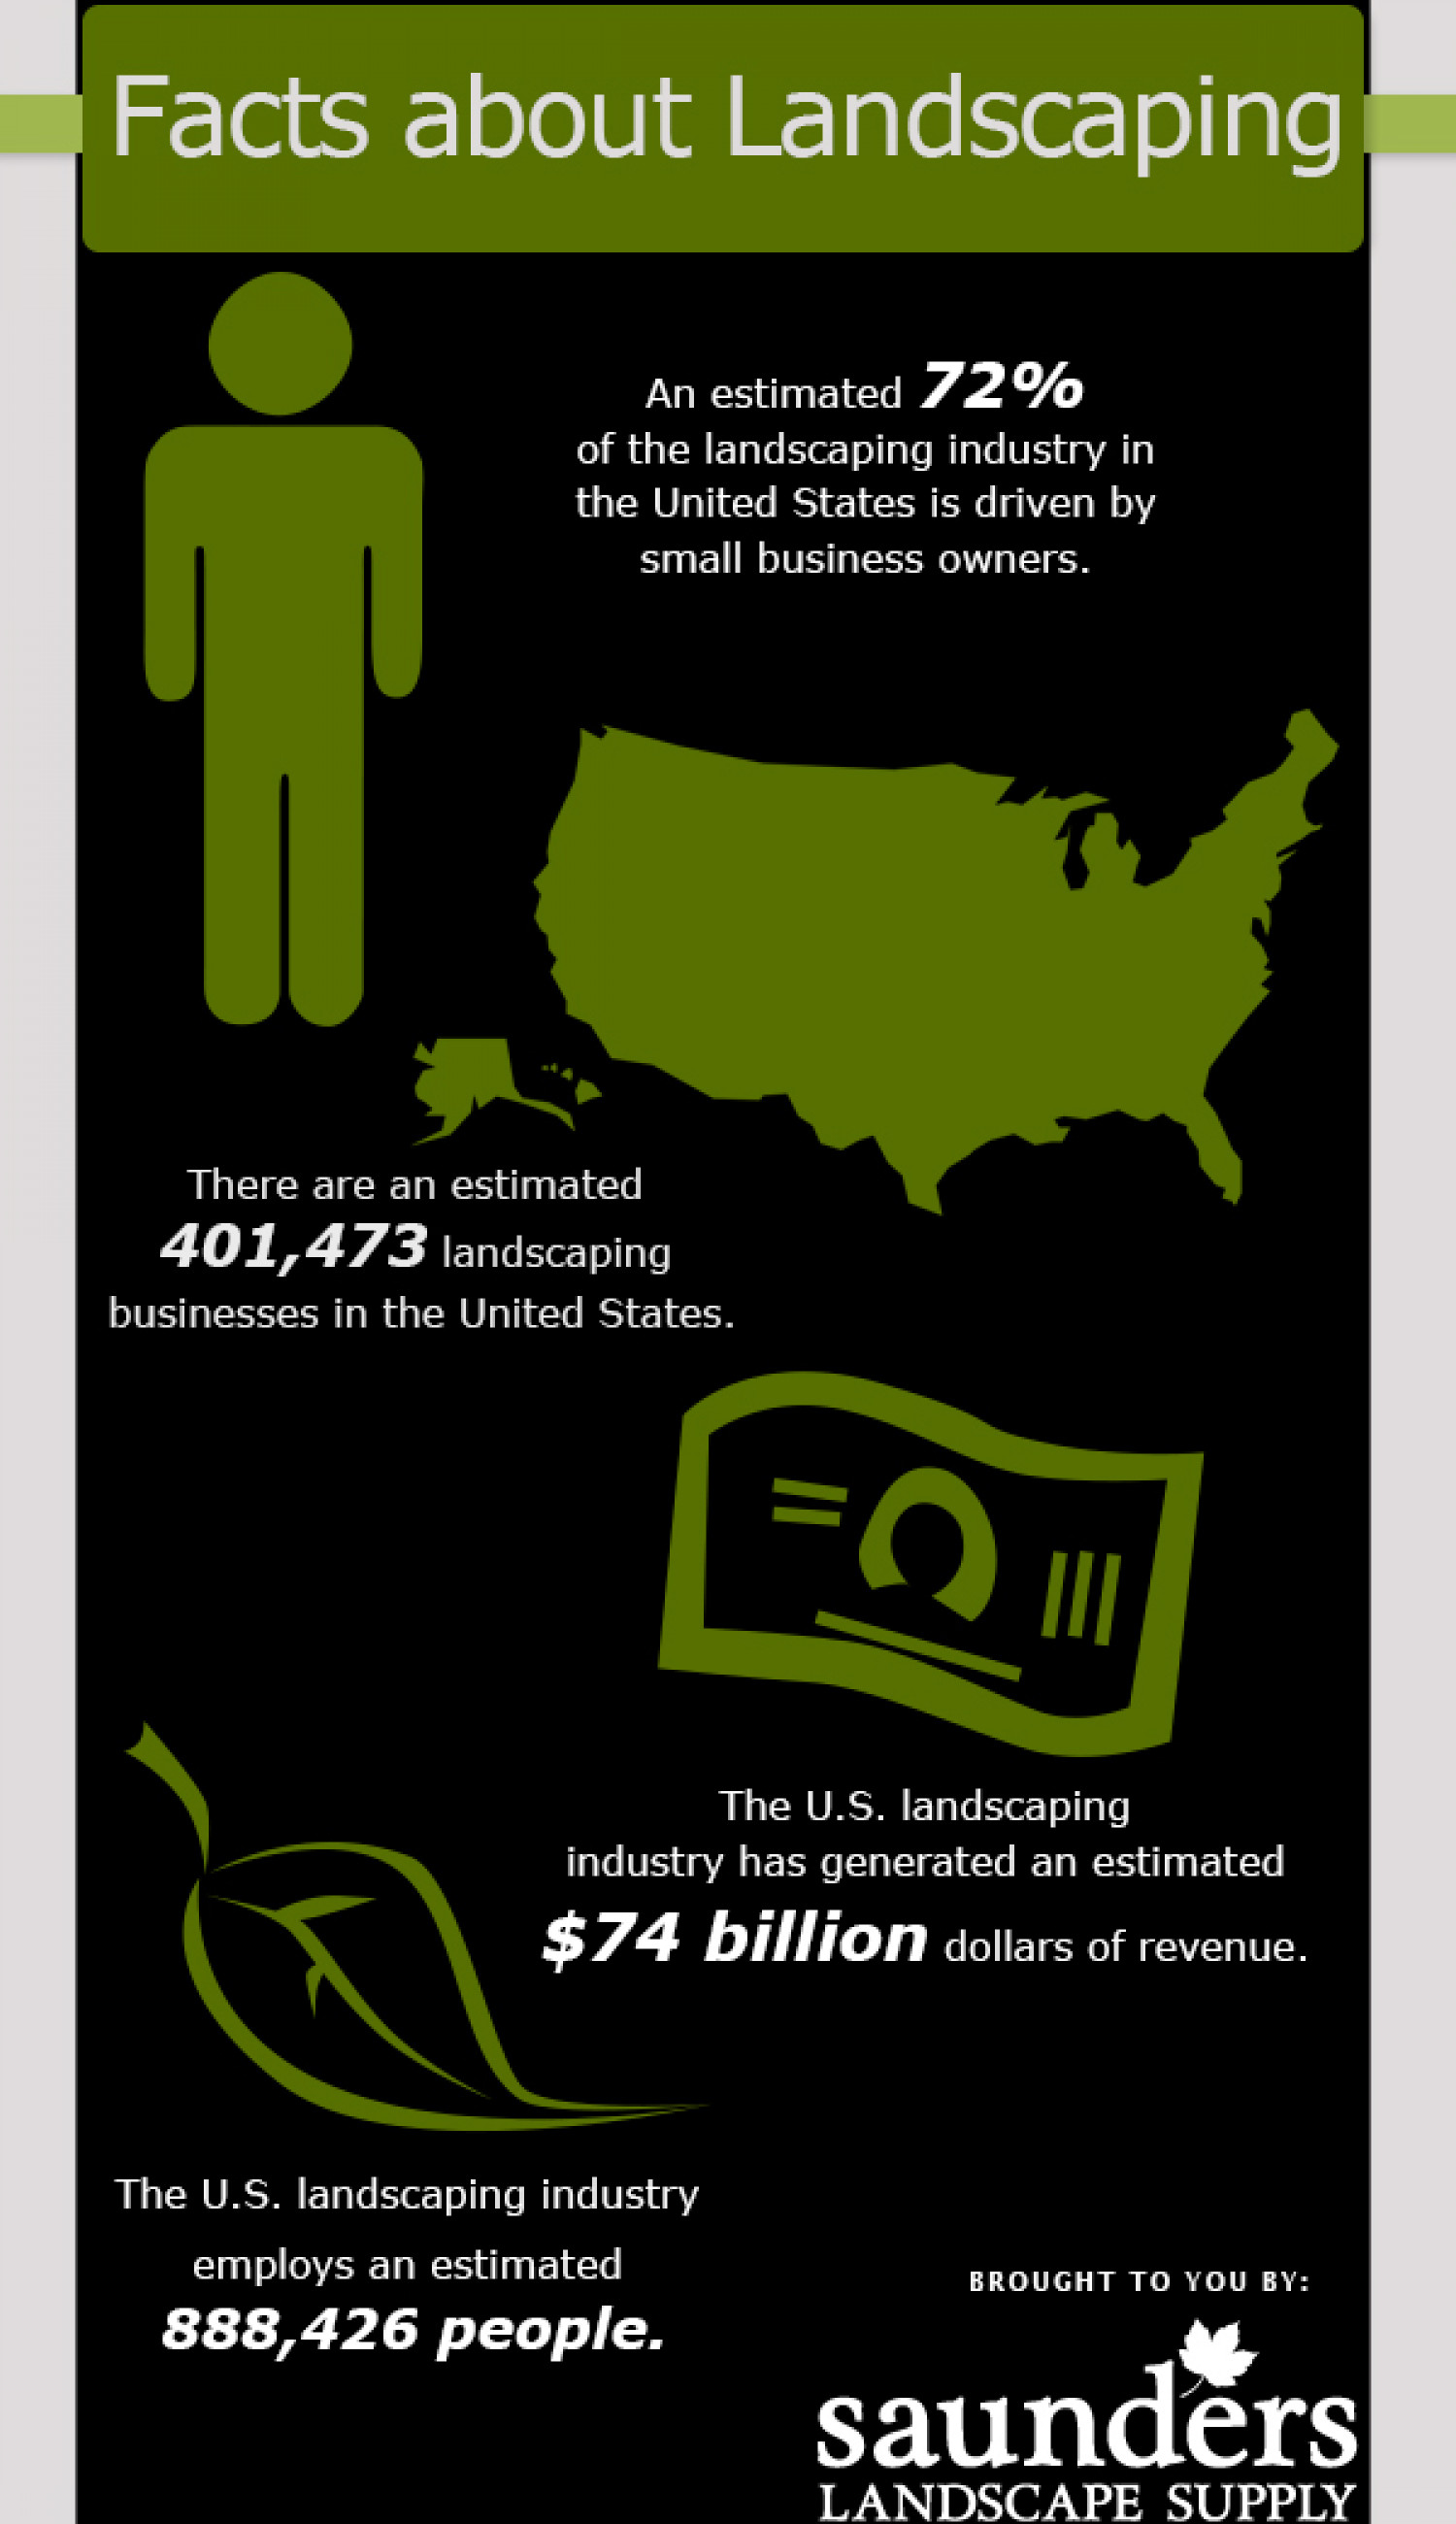 Facts about Landscaping Infographic